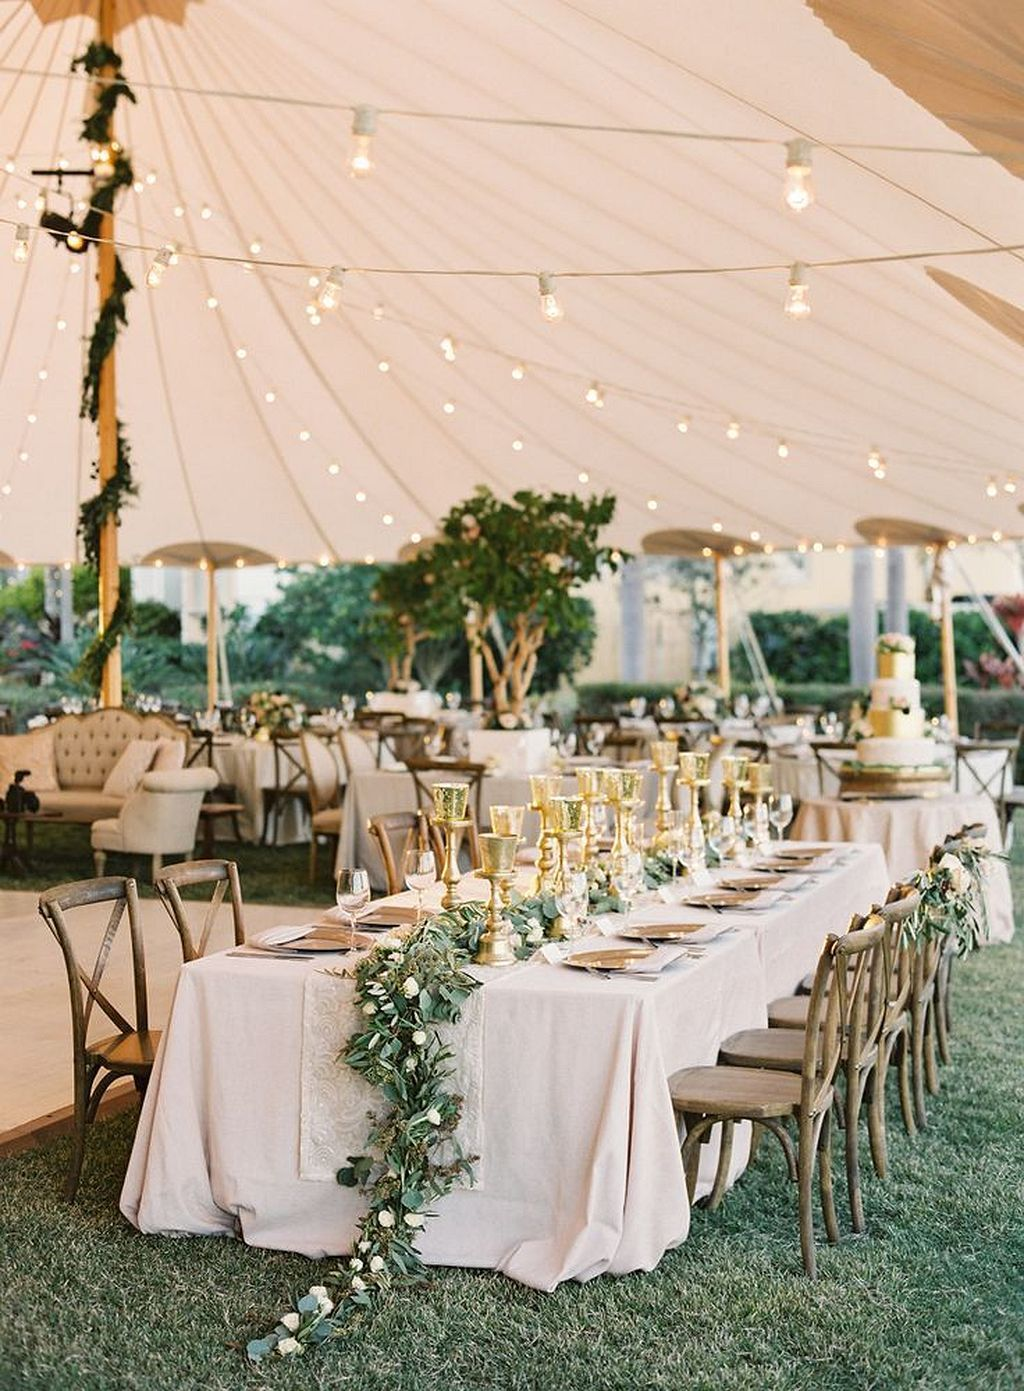 Wedding dinner decoration ideas  Stunning  Outdoor Wedding on a Budget Ideas weddmagz